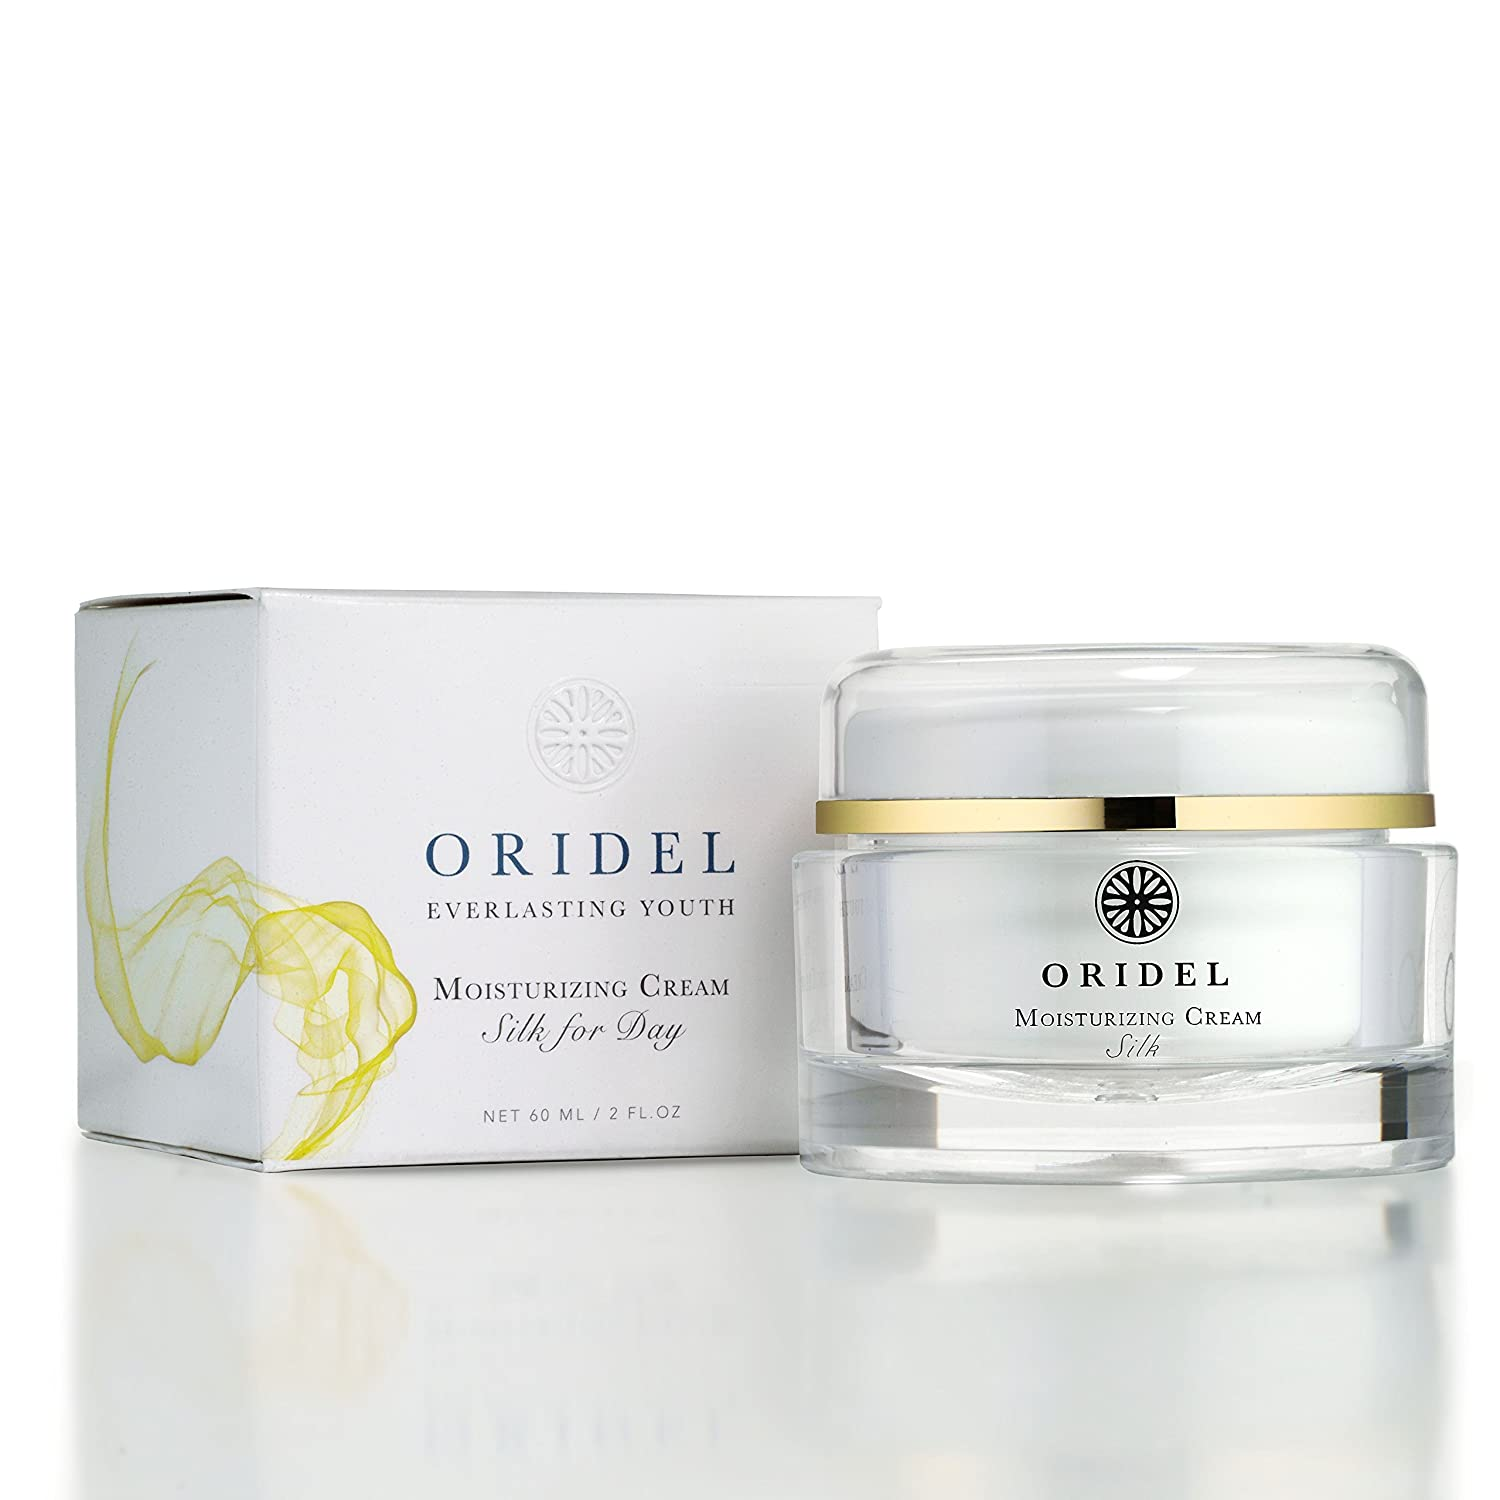 Finally resale start Oridel Silk Day Moisturizing with We OFFer at cheap prices Buckthorn Cream Sea